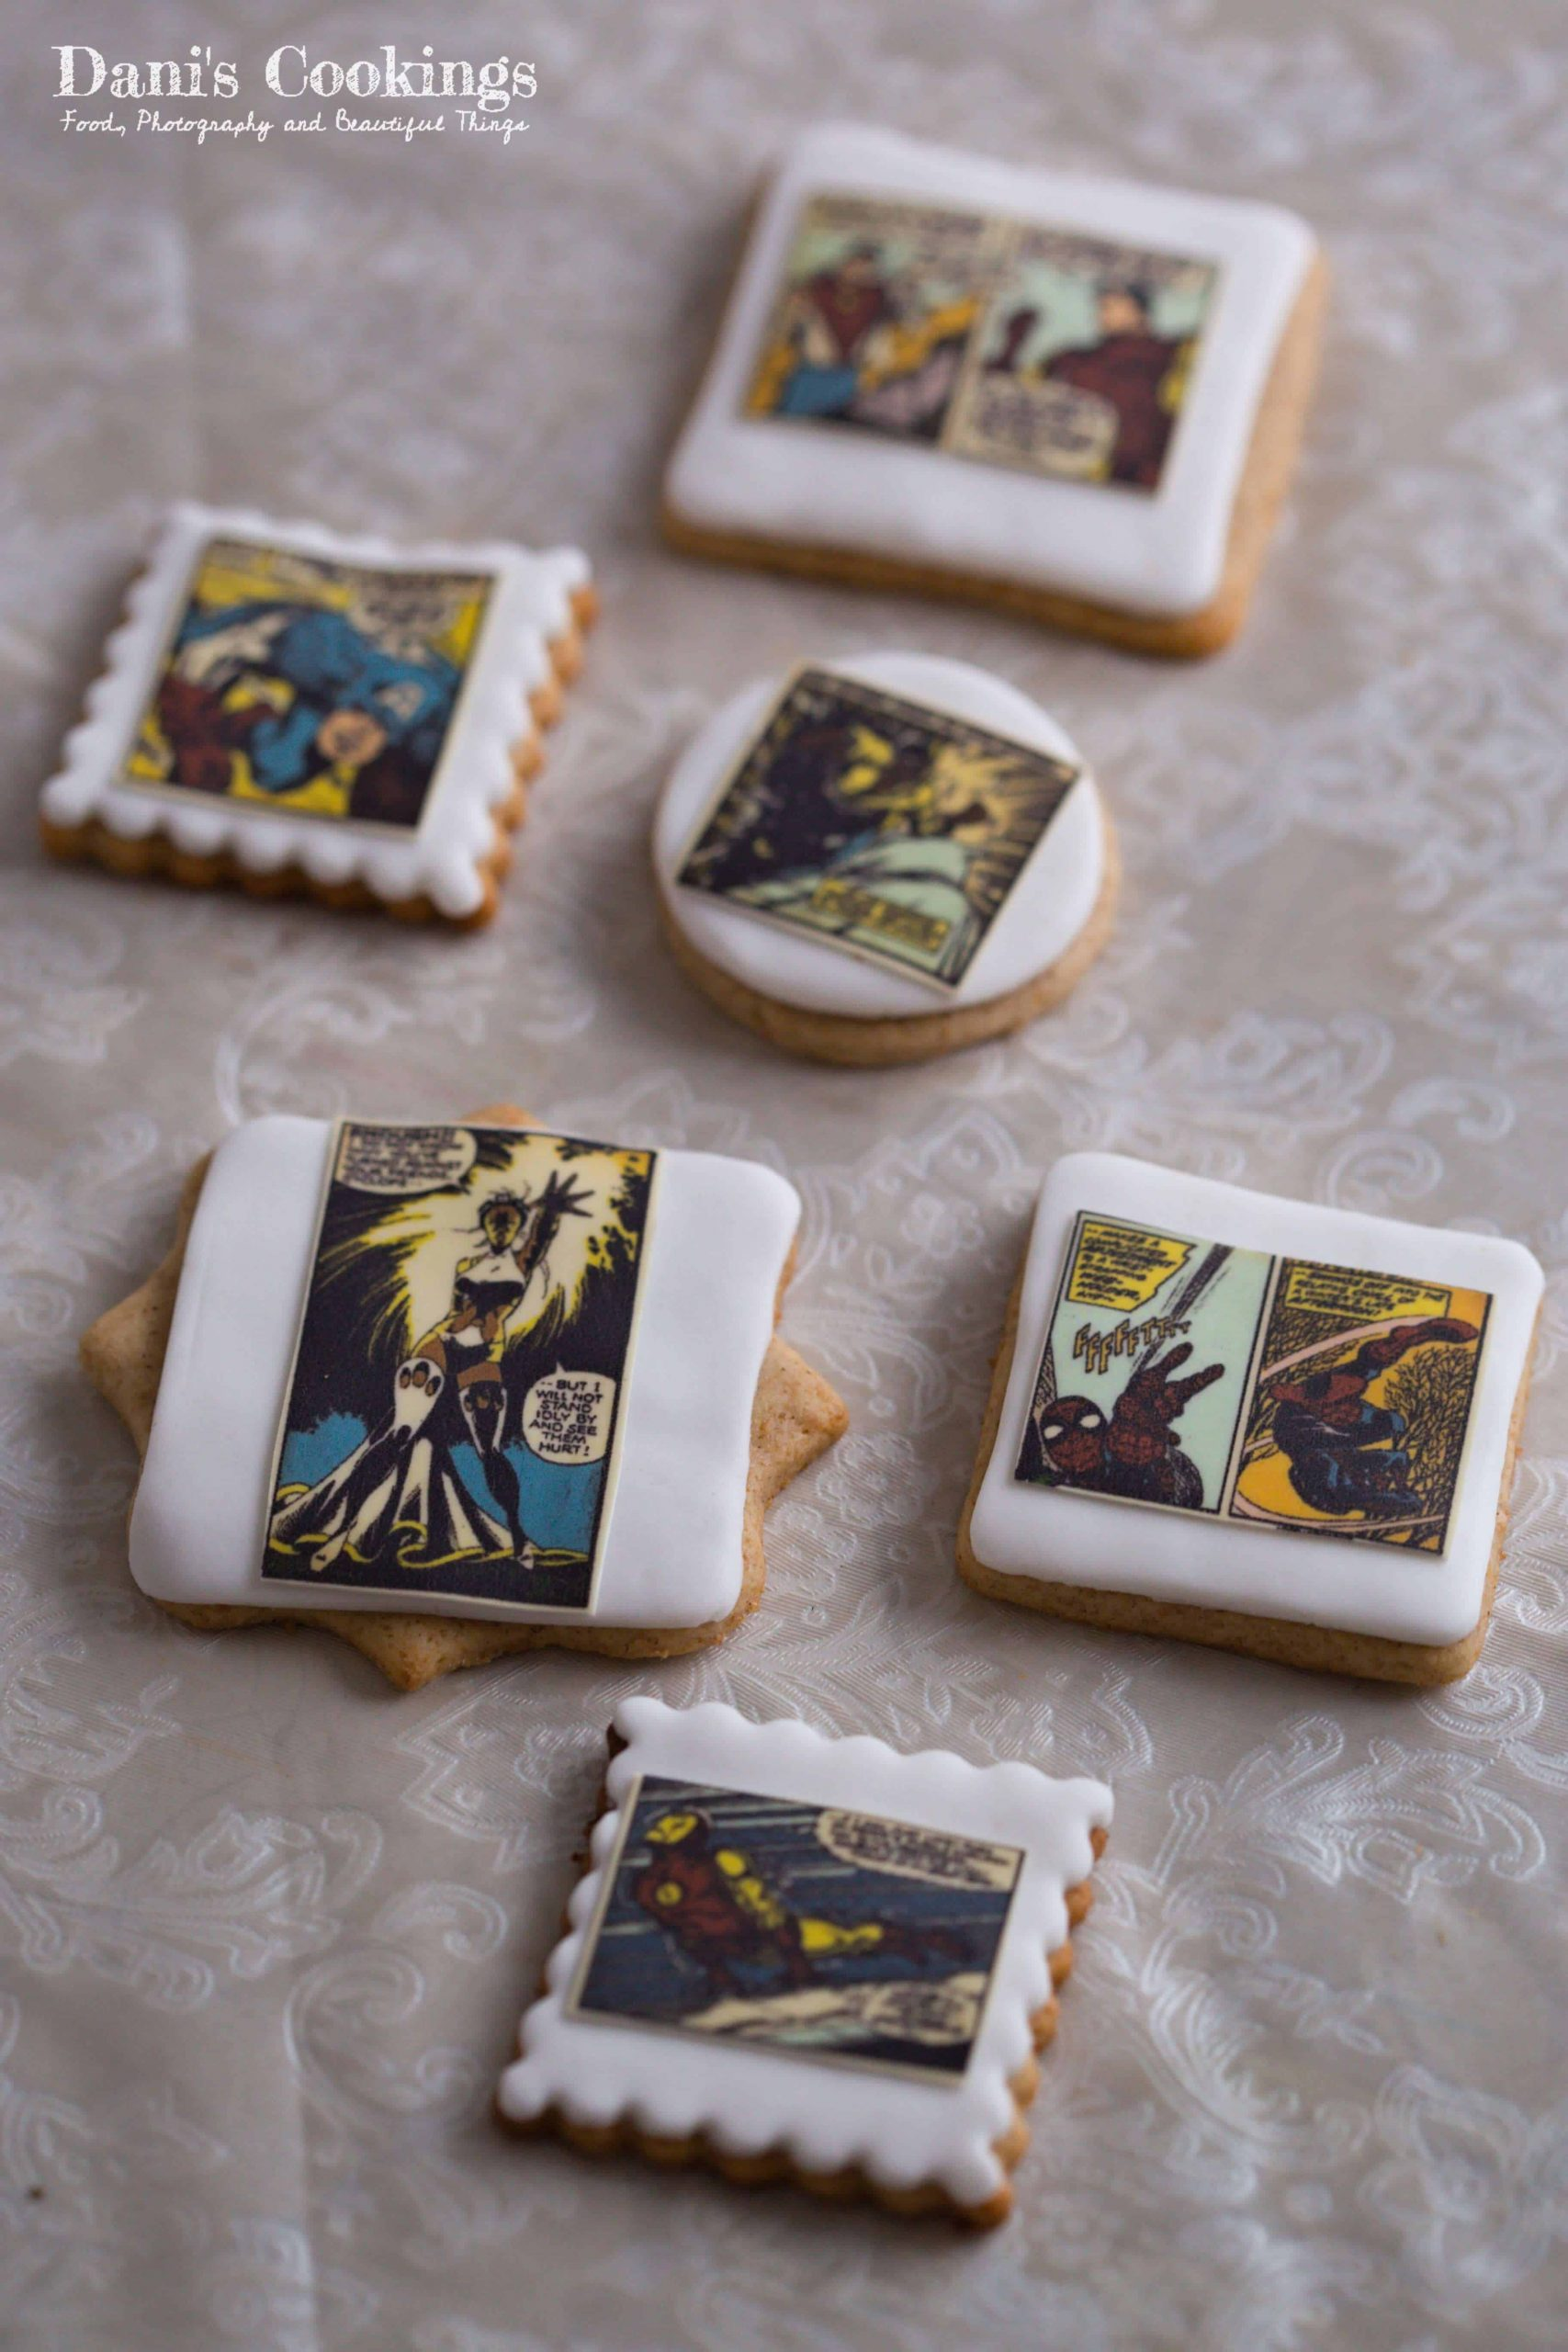 Healthy Coconut Date Cake and gingerbread cookies with Spiderman Decoration made of fondant and edible prints | Dani's Cookings